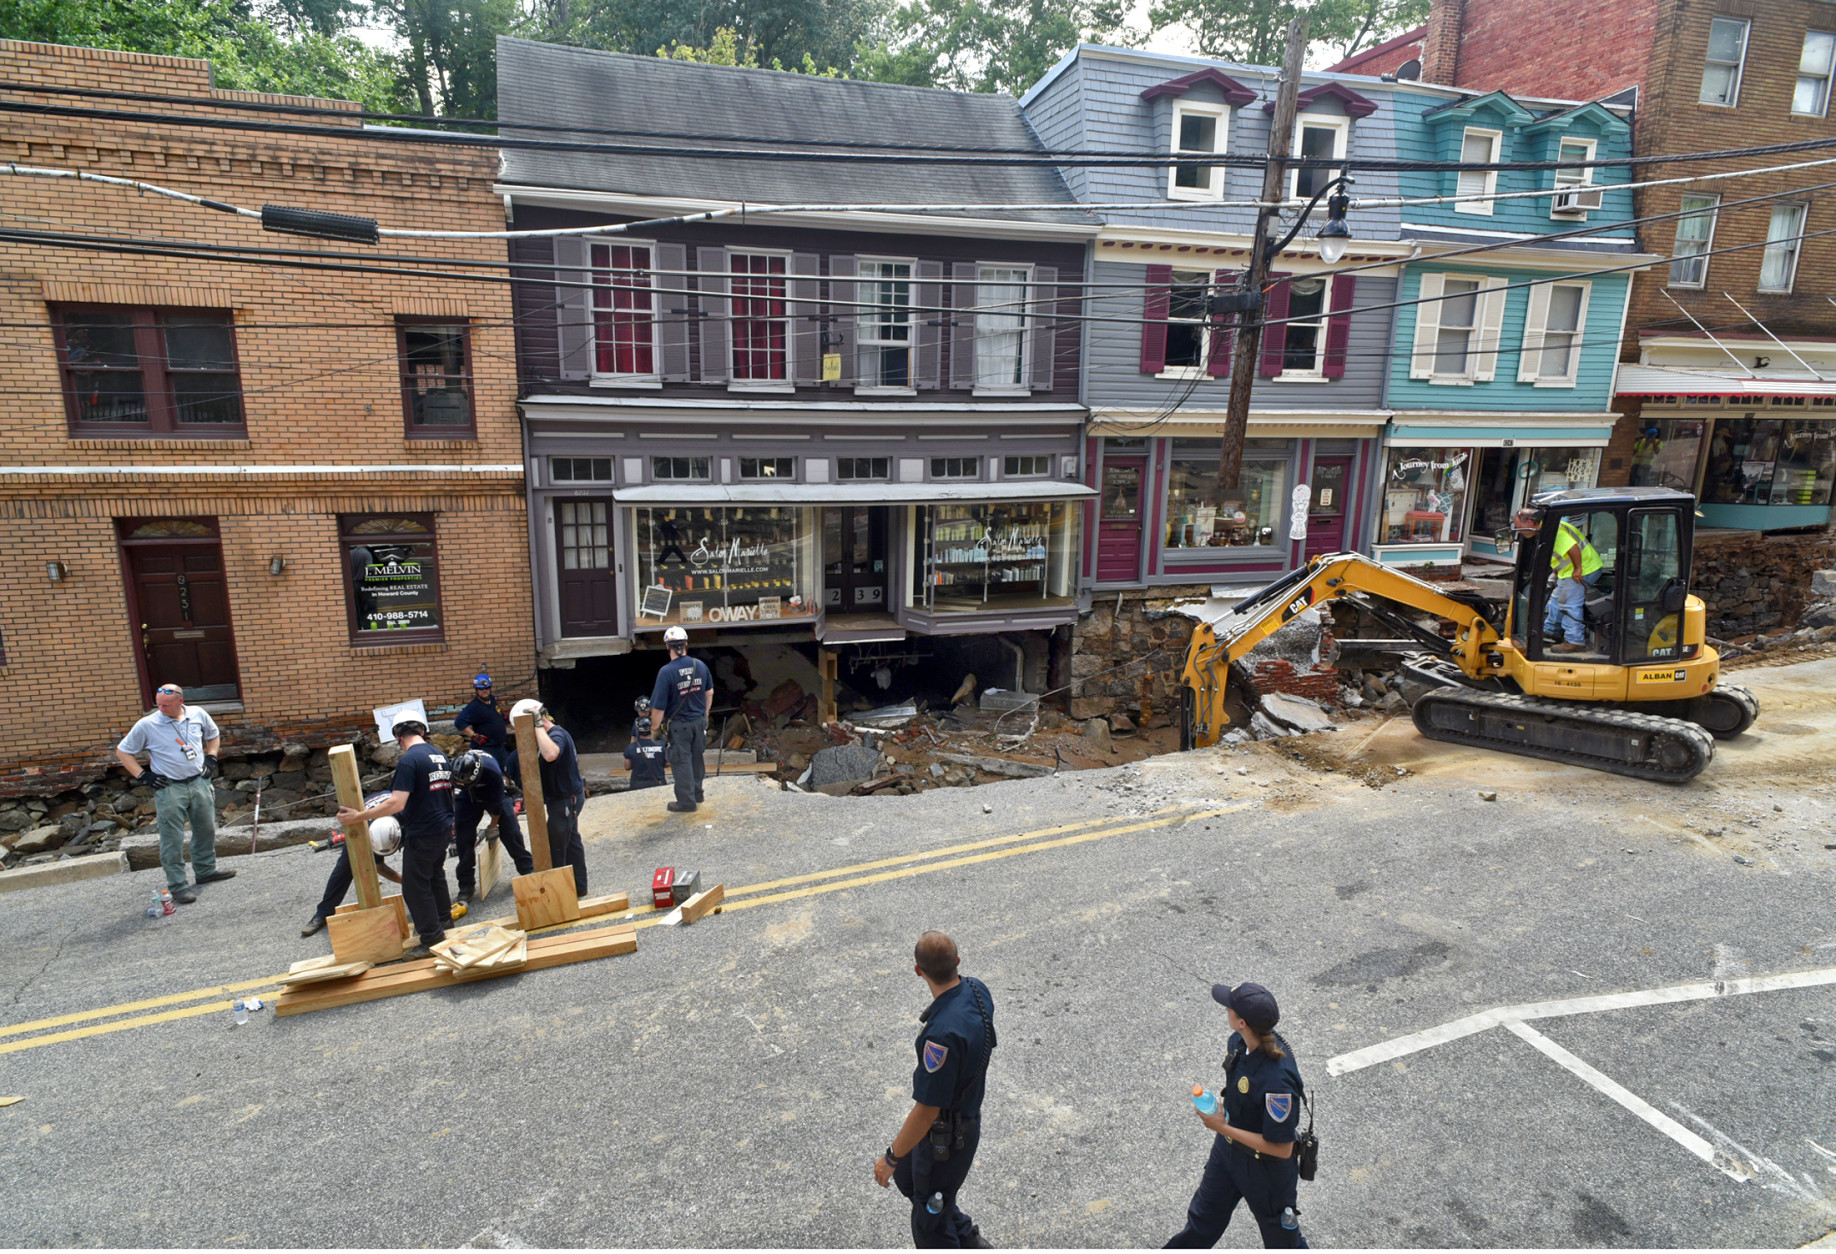 Recovery and cleanup is underway on historic Main Street after the sidewalk caved in due to overnight flooding in Ellicott City, Md., Sunday, July 31, 2016. Historic, low-lying Ellicott City, Maryland, was ravaged by floodwaters Saturday night, killing a few people and causing devastating damage to homes and businesses, officials said. (Amy Davis/The Baltimore Sun via AP)